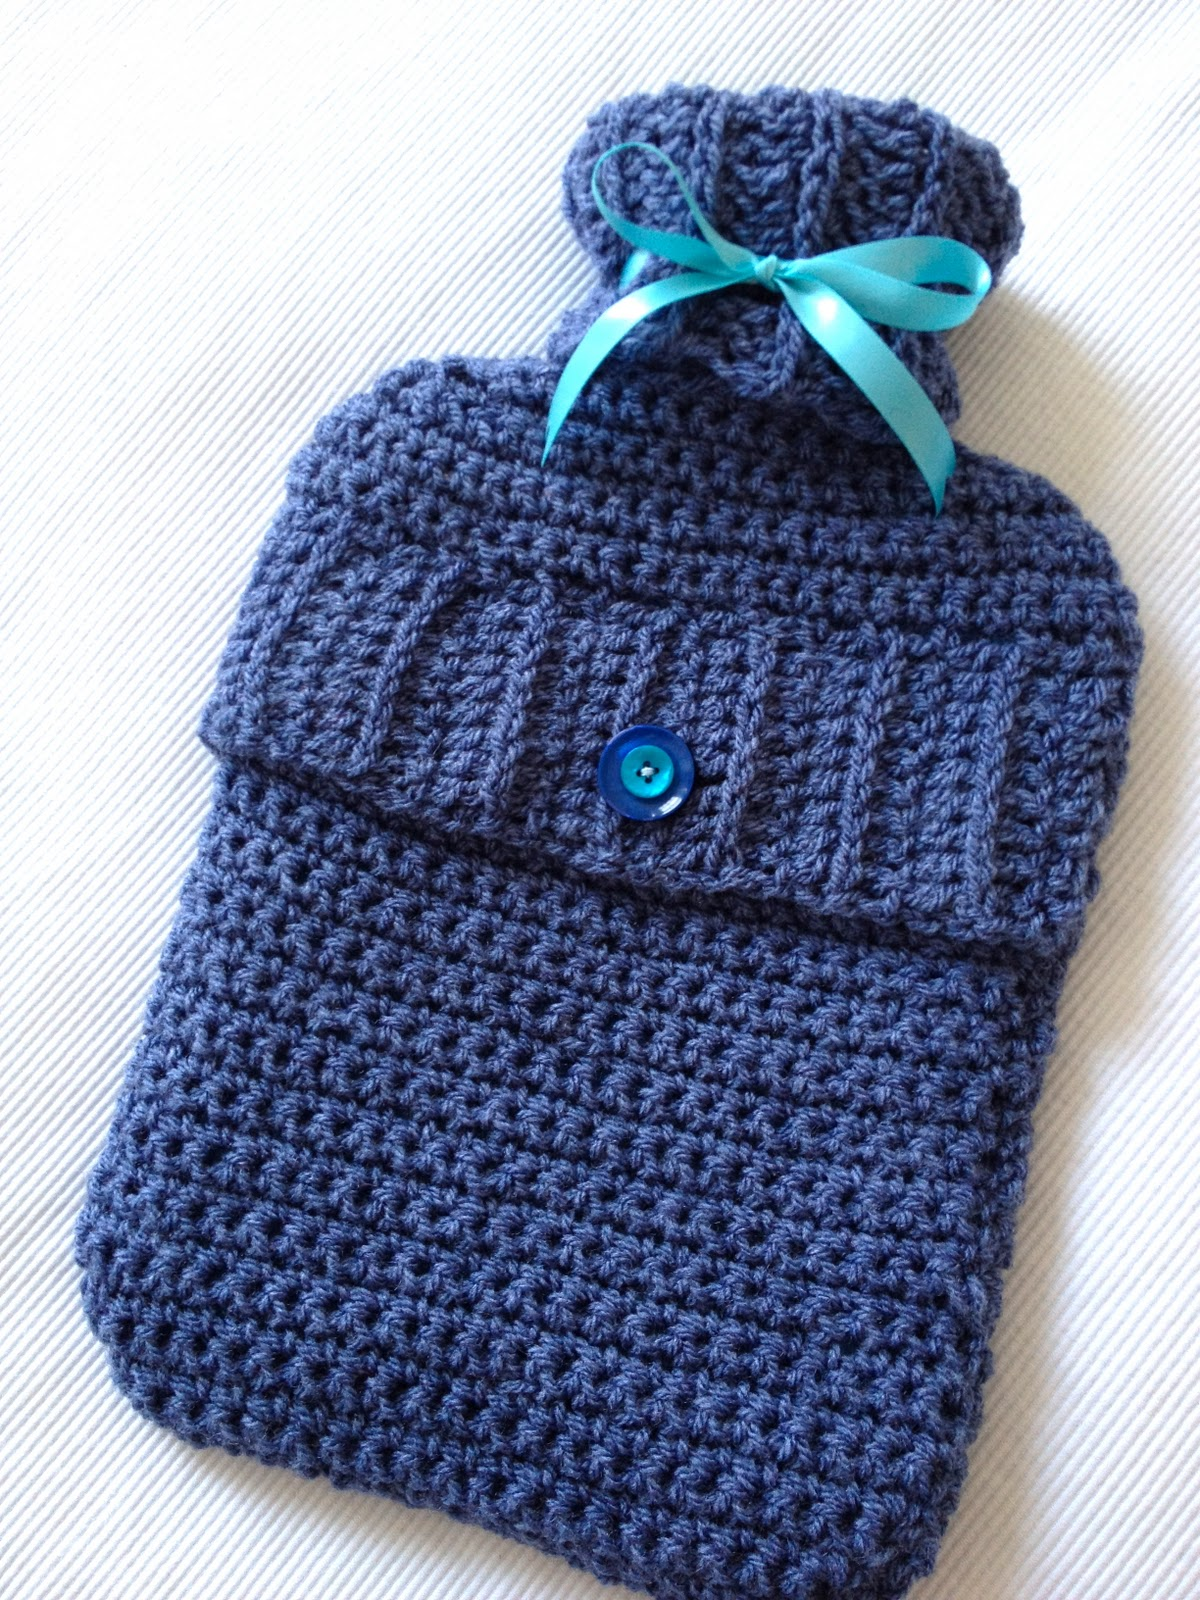 Hooked Again: Project # 1: Crochet Hot Water Bottle Cover